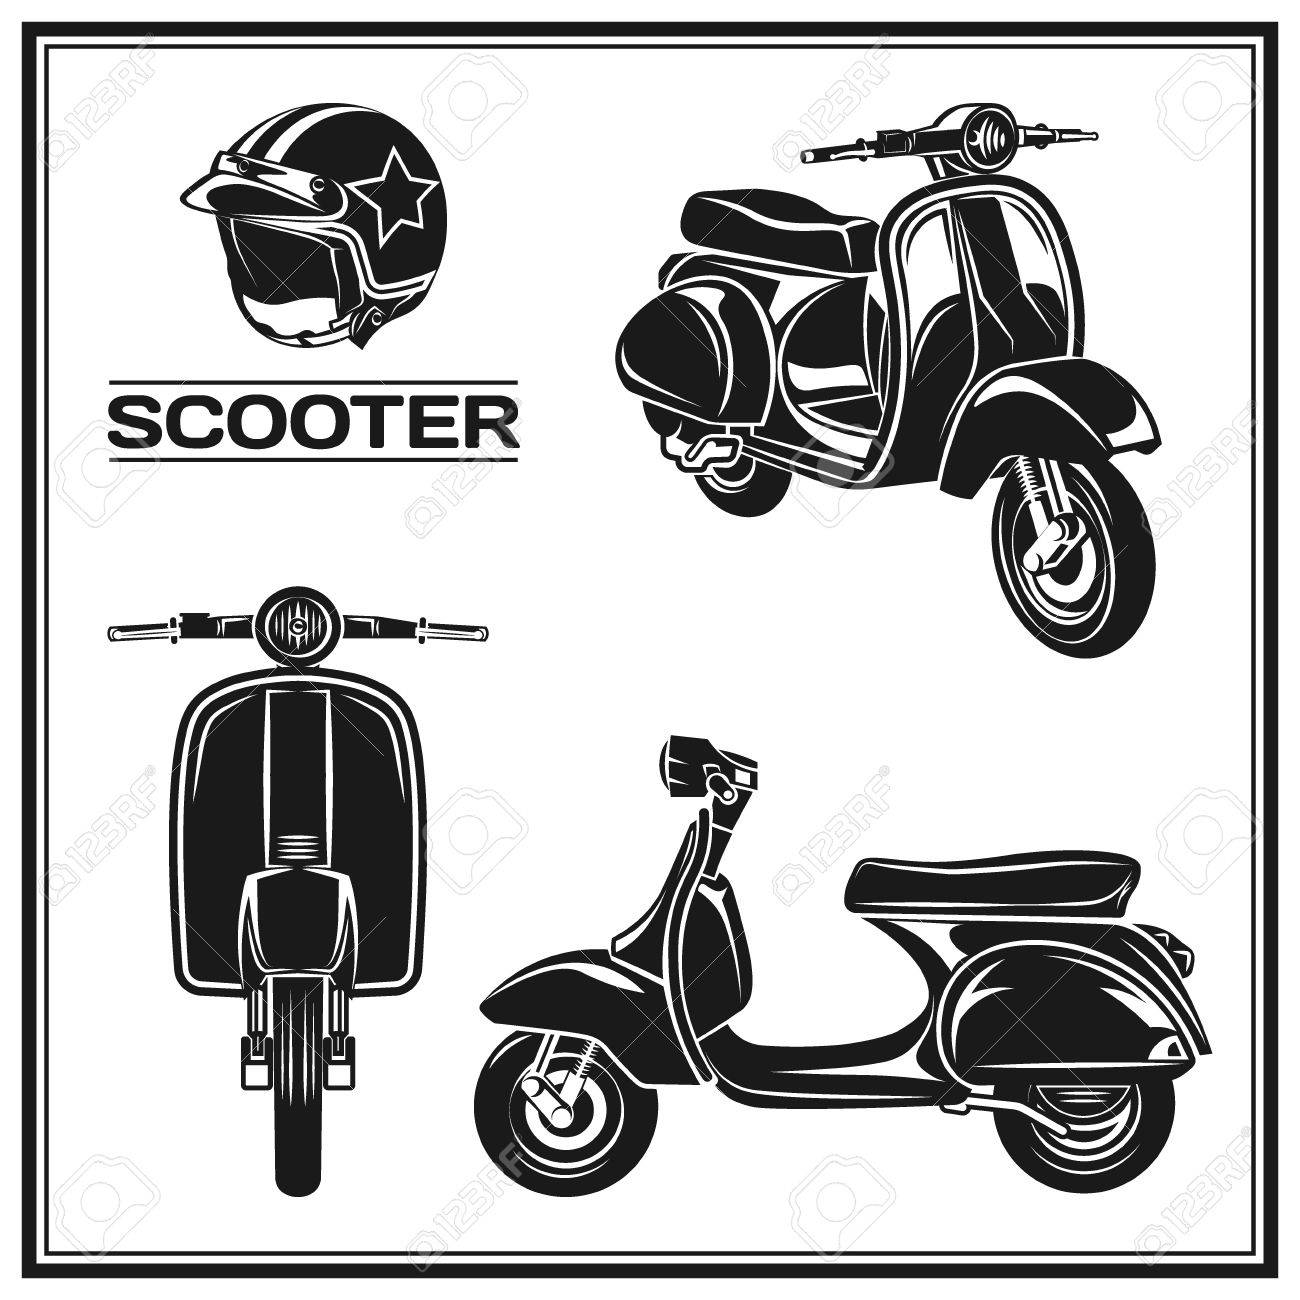 set of classic scooter emblems icons and badges urban street royalty free cliparts vectors and stock illustration image 58812885 set of classic scooter emblems icons and badges urban street